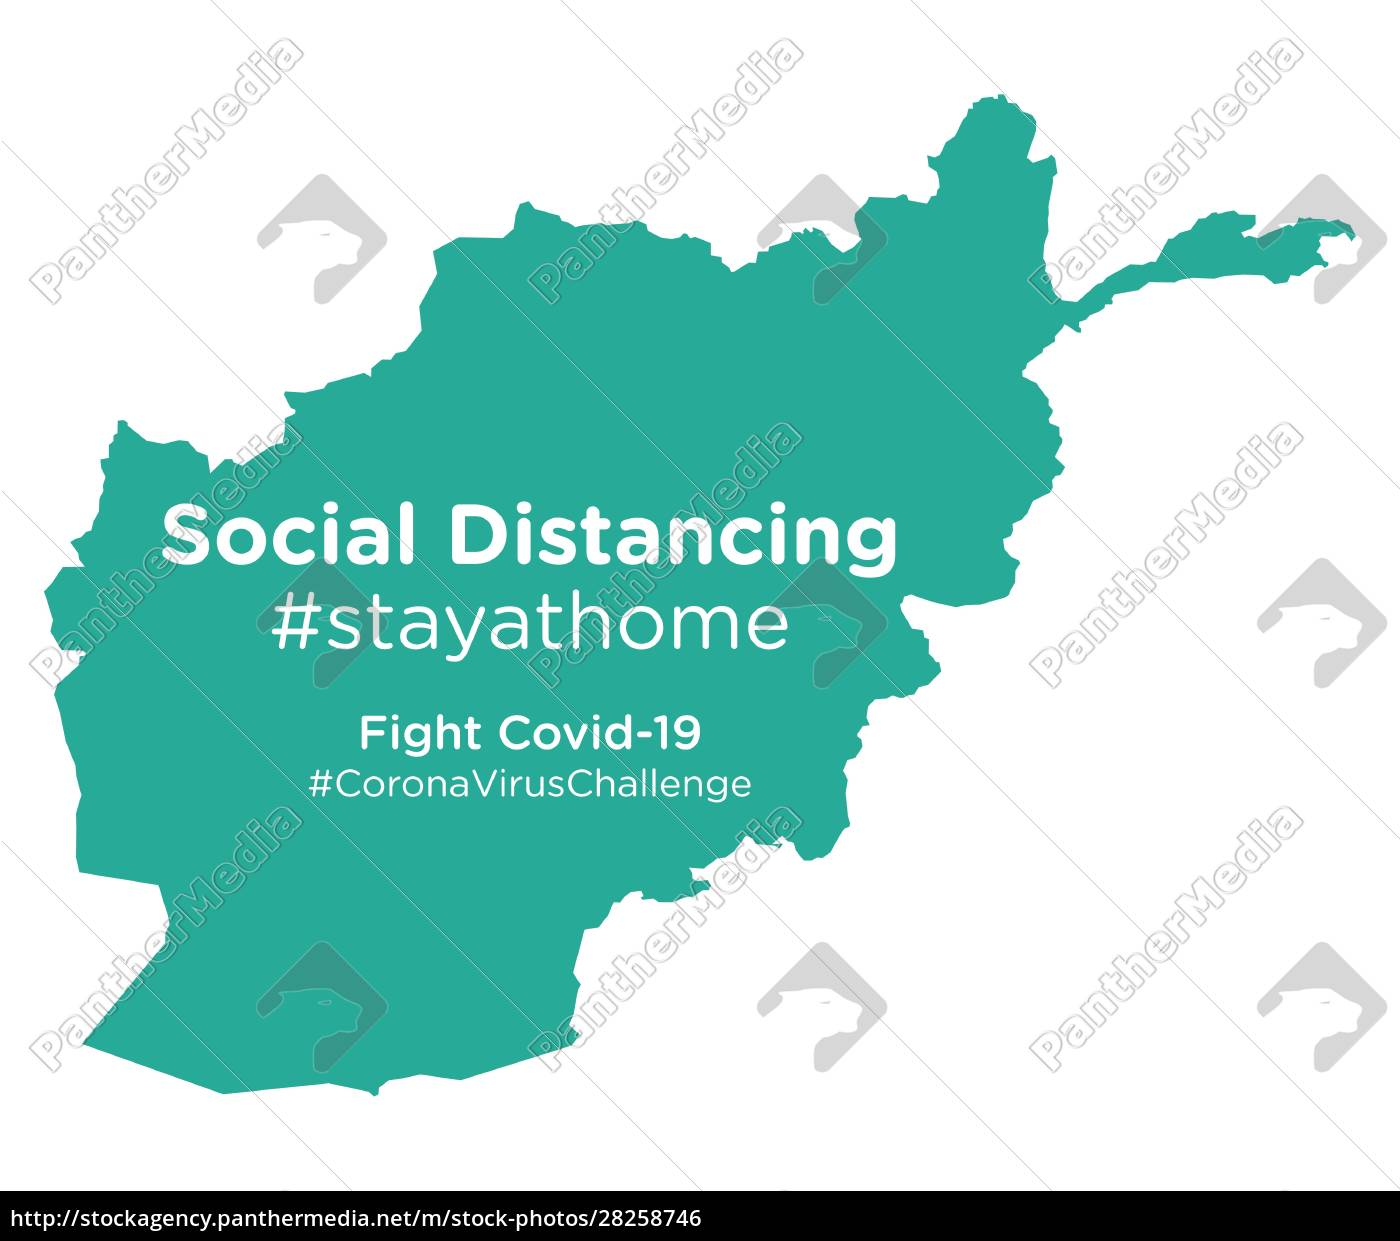 afghanistan, map, with, social, distancing, #stayathome - 28258746